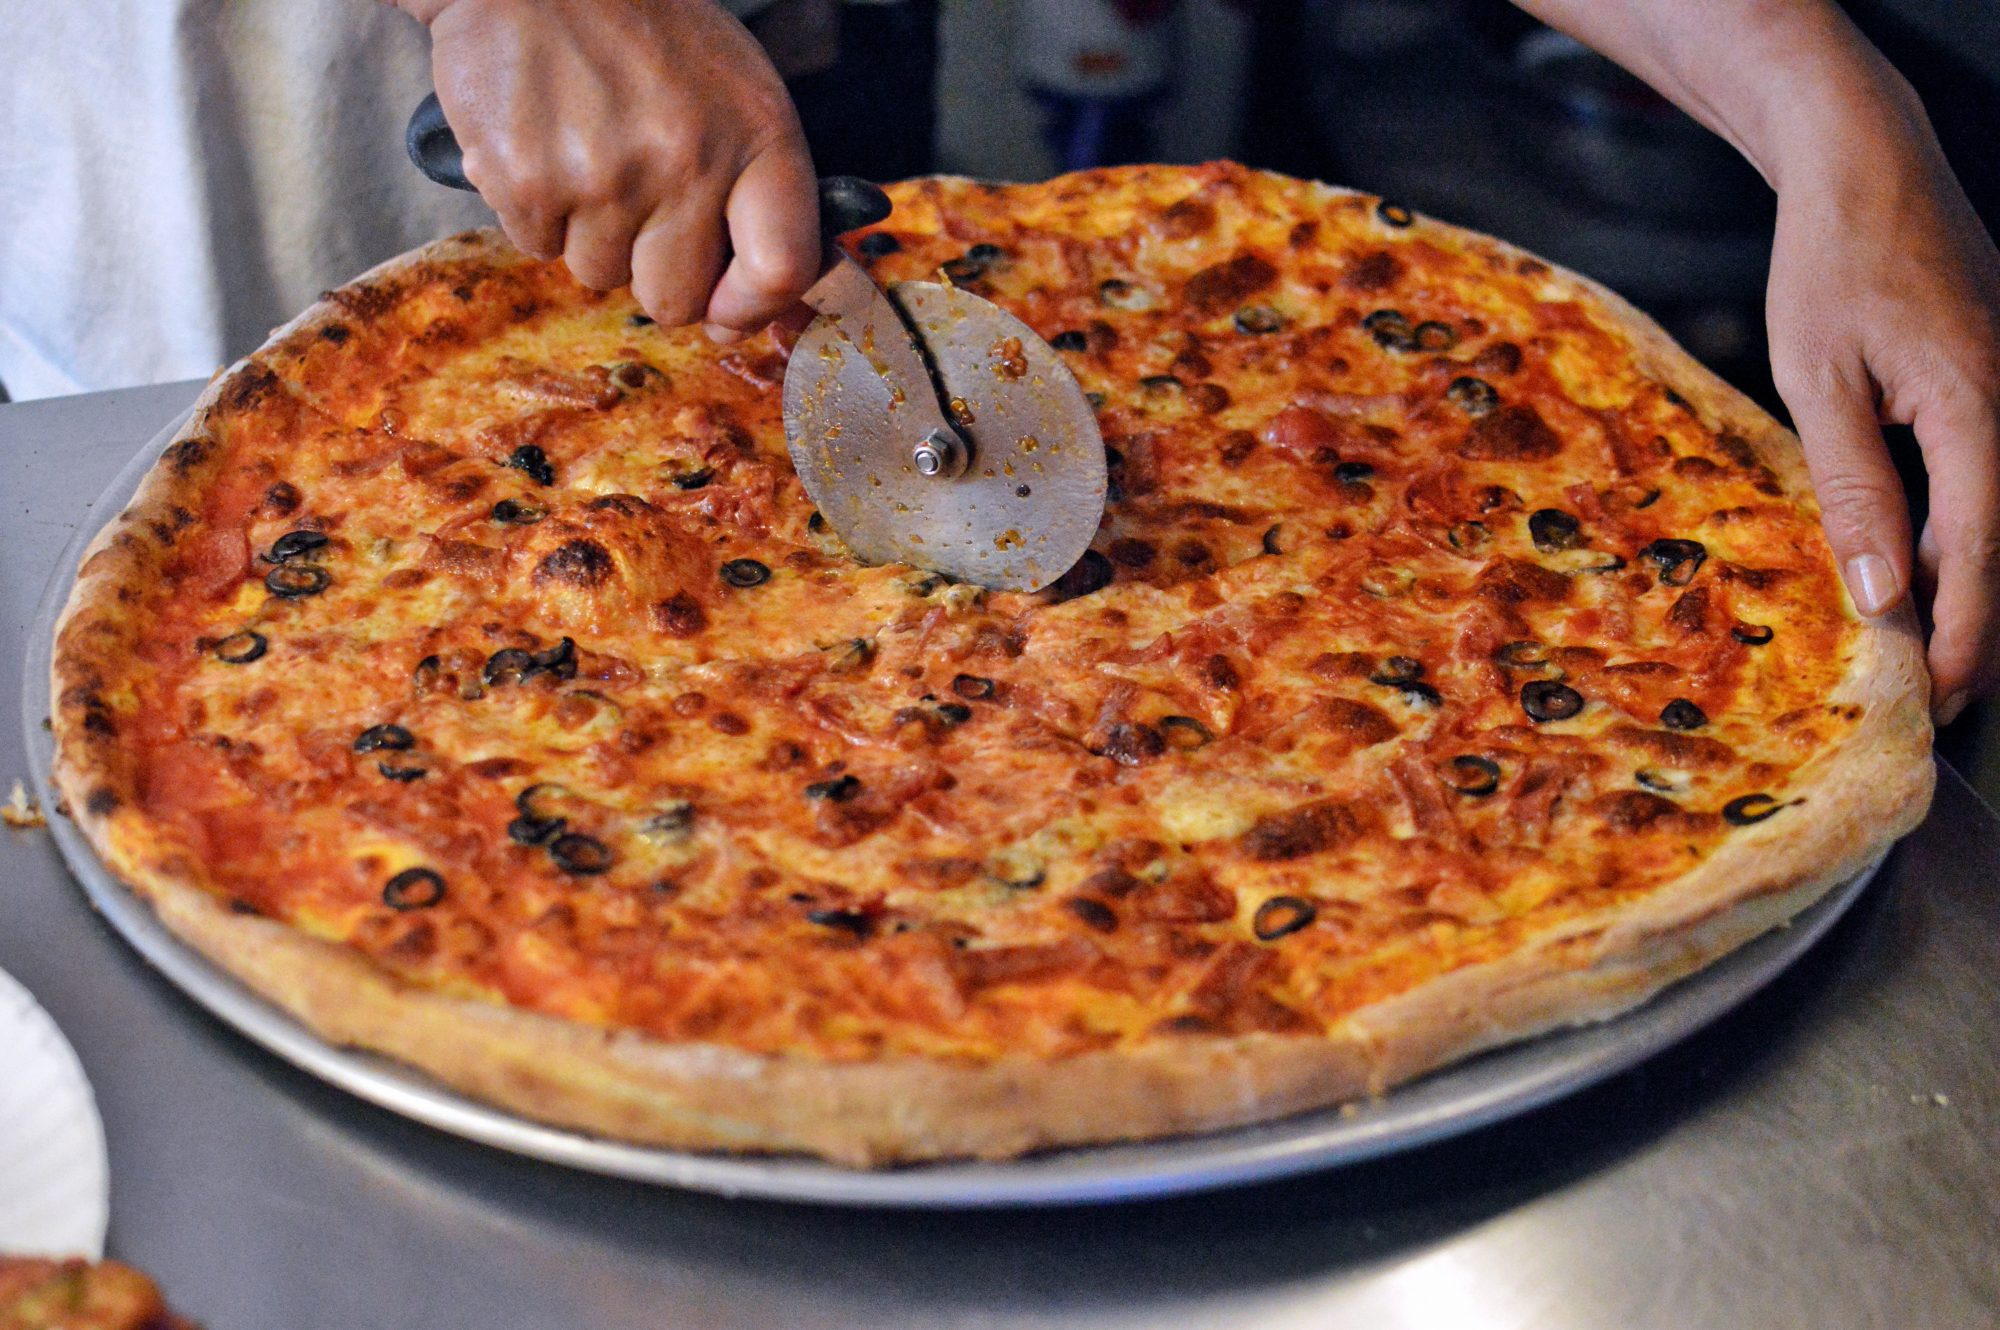 3 Better Ways to Cut Pizza, According to a James Beard Award-Winning Chef